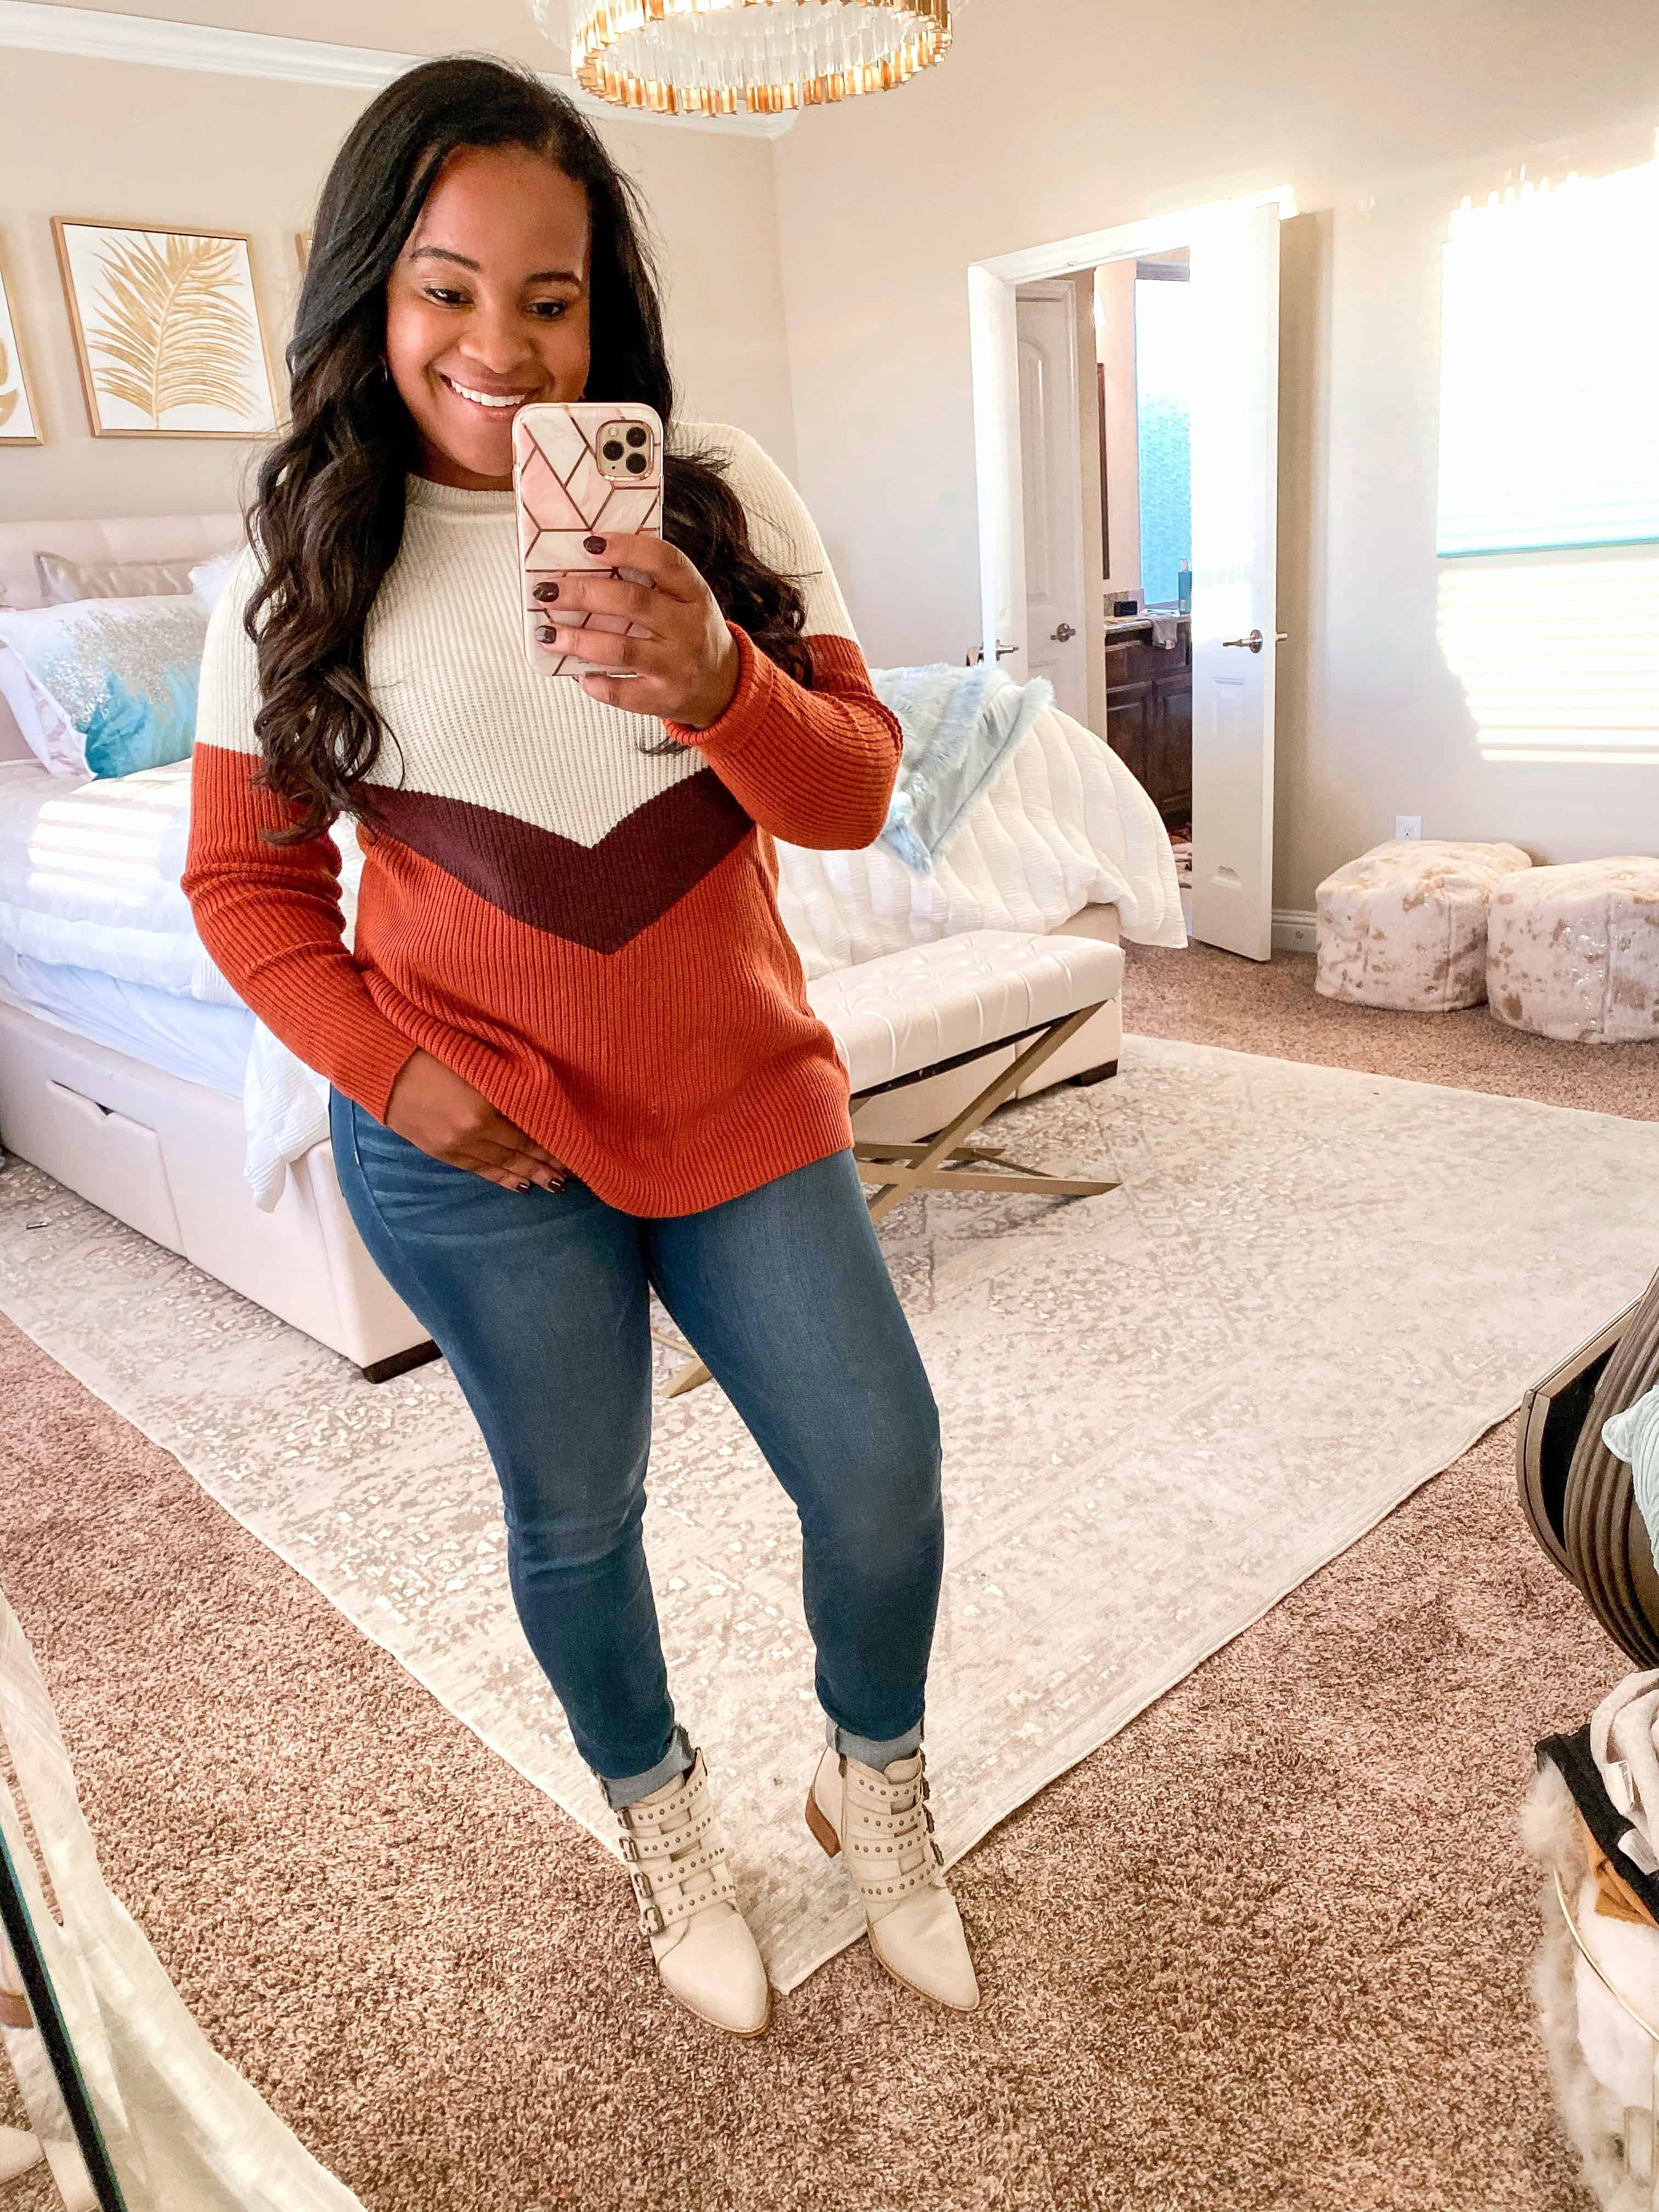 4 Cute Thanksgiving Outfit Ideas featured by top US fashion blog, Glamorous Versatility: image of a woman wearing a chevron sweater, skinny jeans and ankle booties